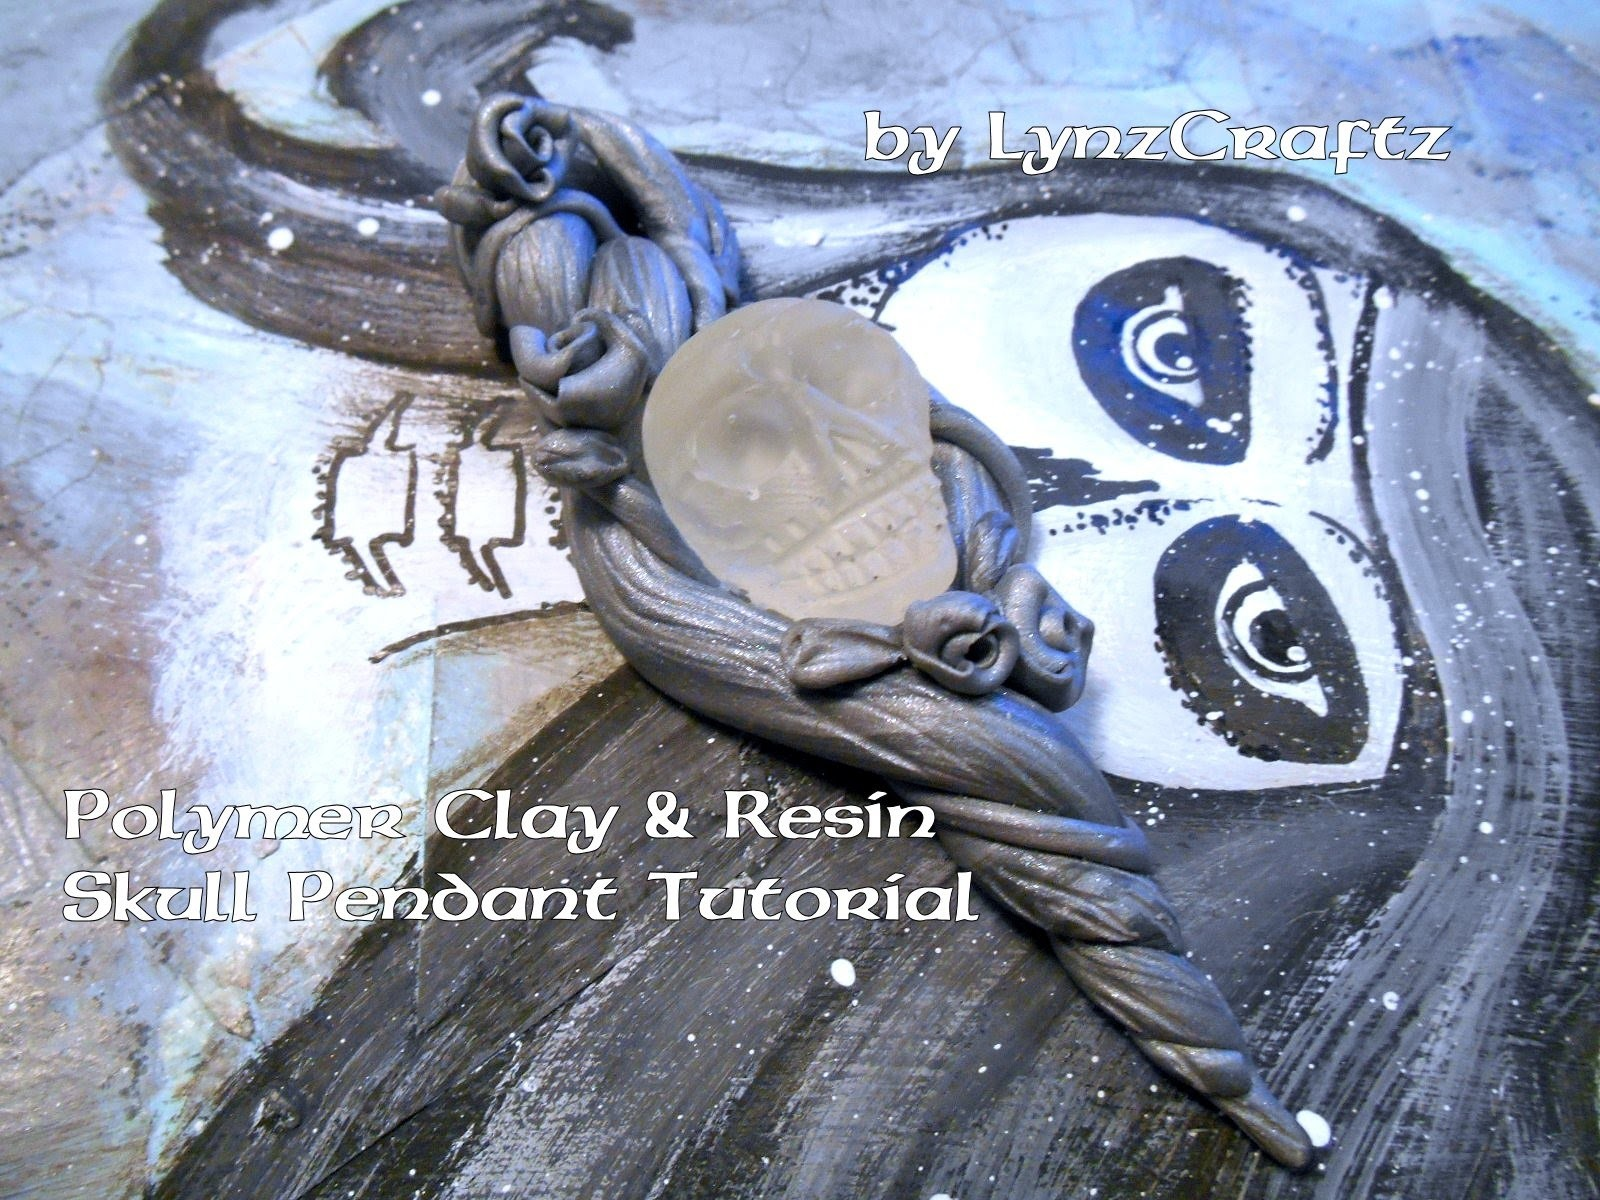 Polymer clay & resin skull pendant tutorial final